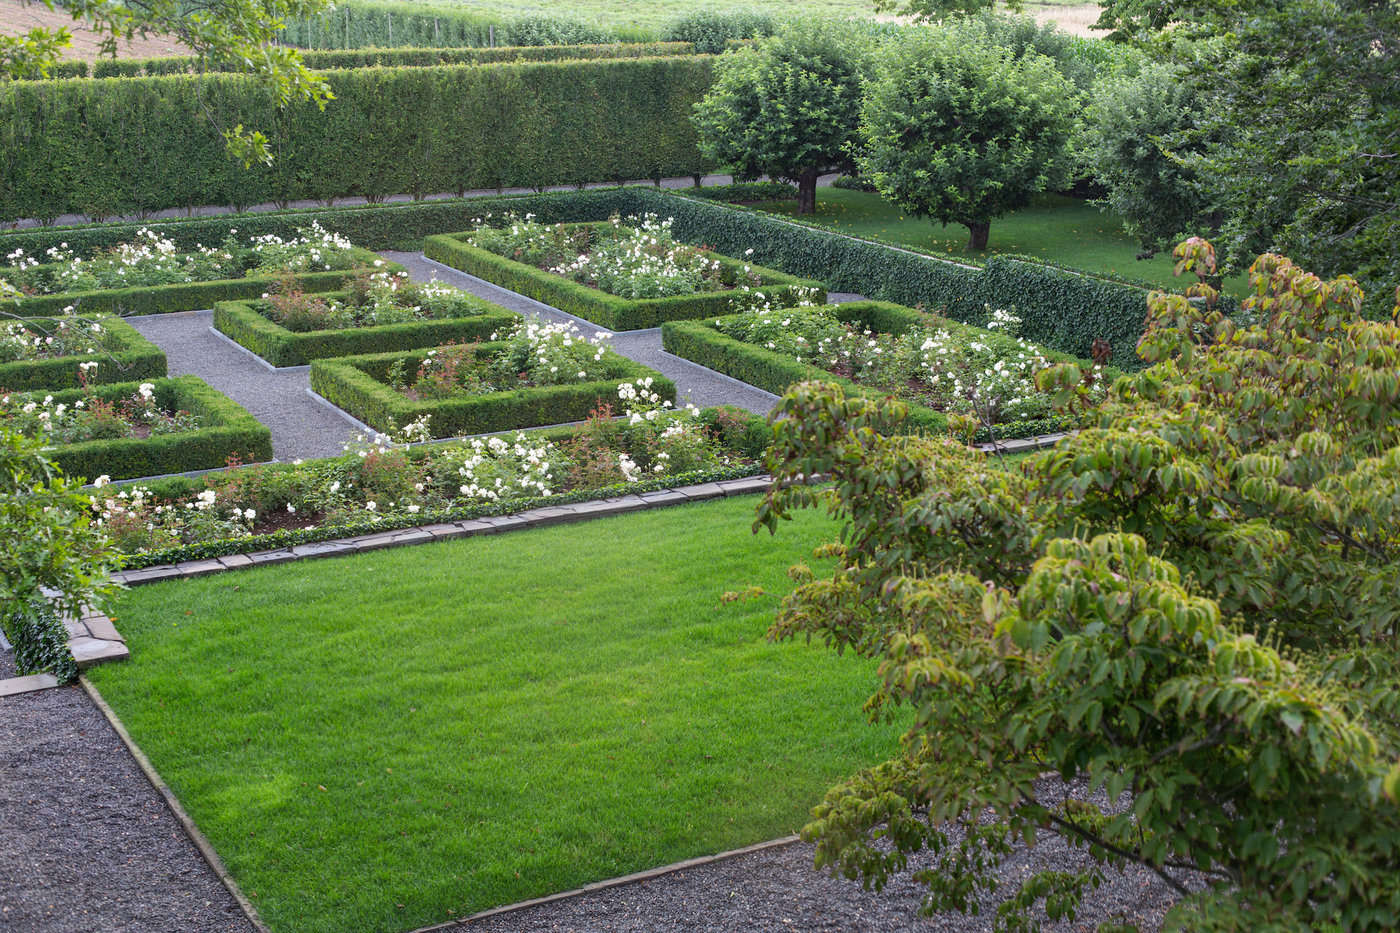 Landscaping: 10 Rose Garden Design Ideas - Gardenista